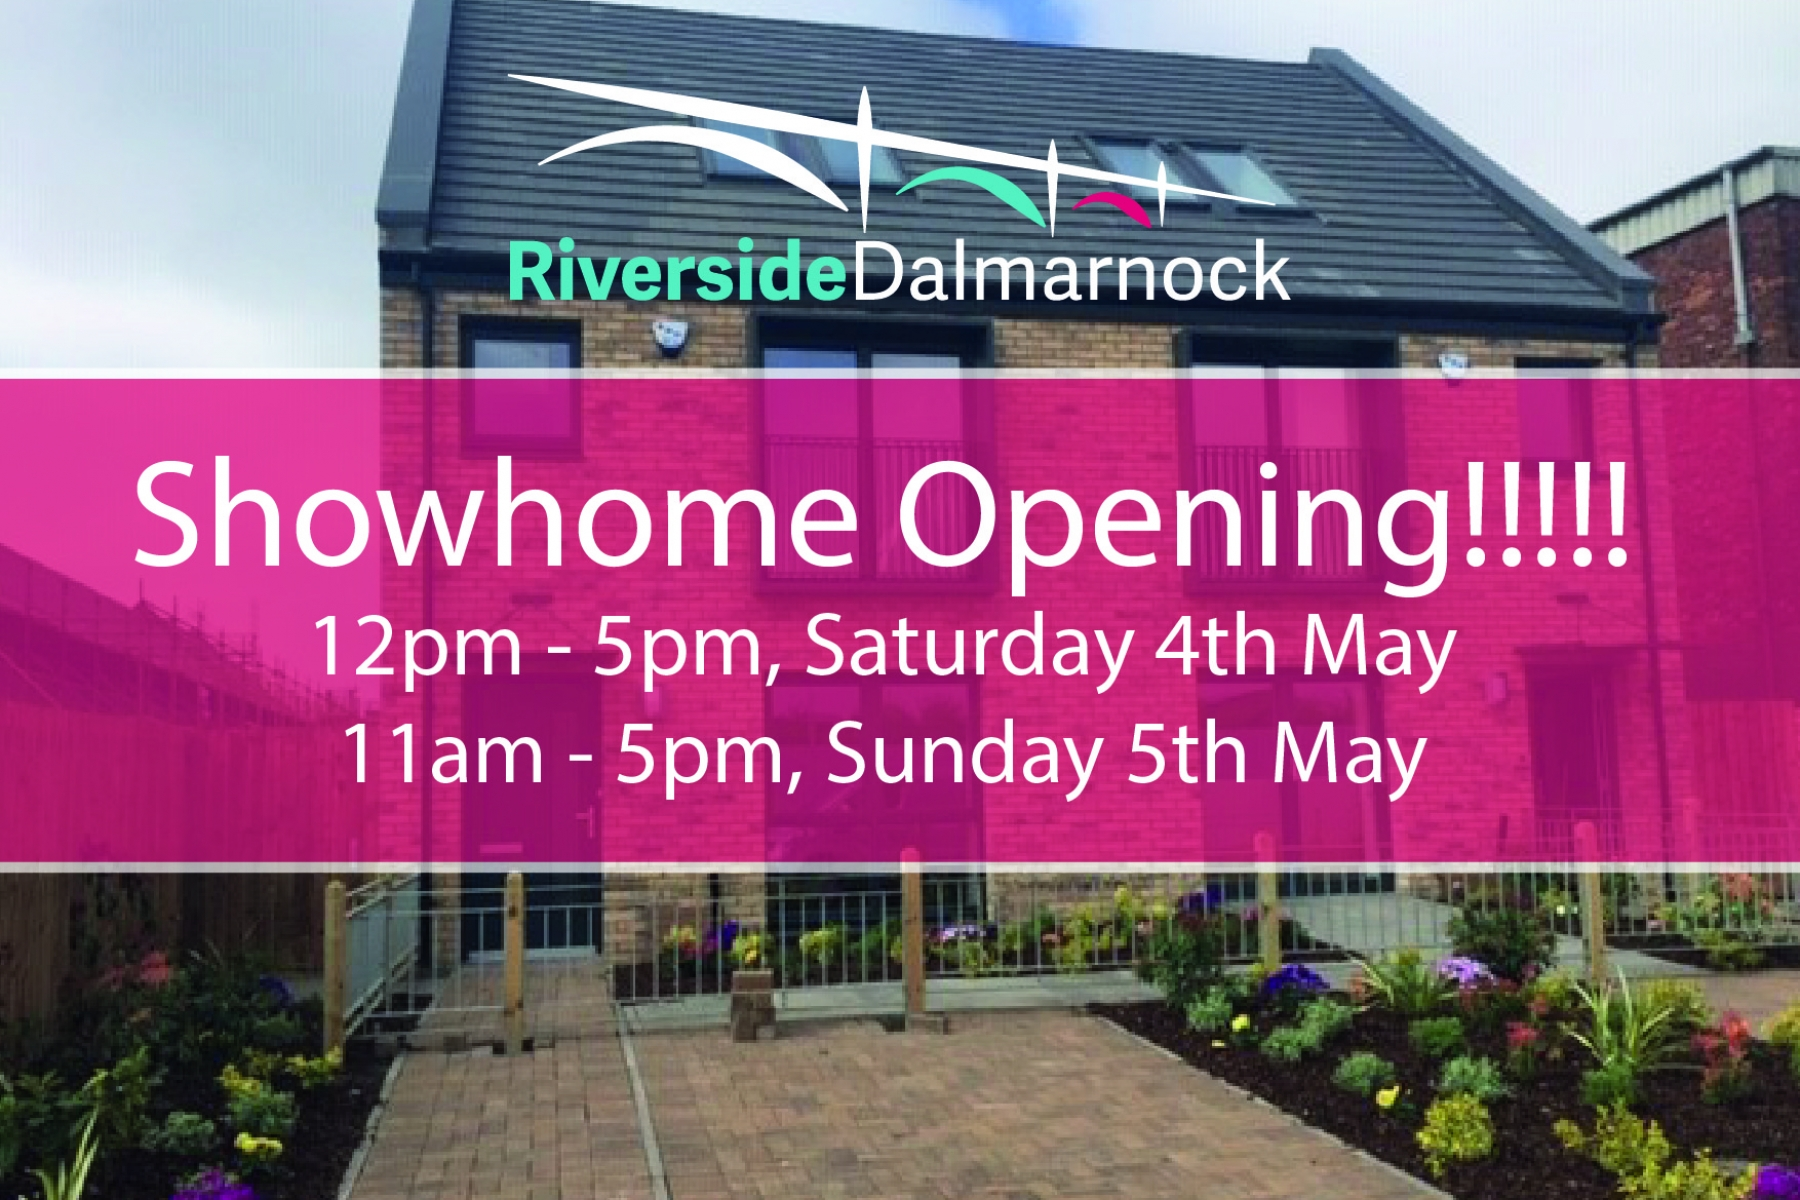 Showhome Launch - Saturday 4th May